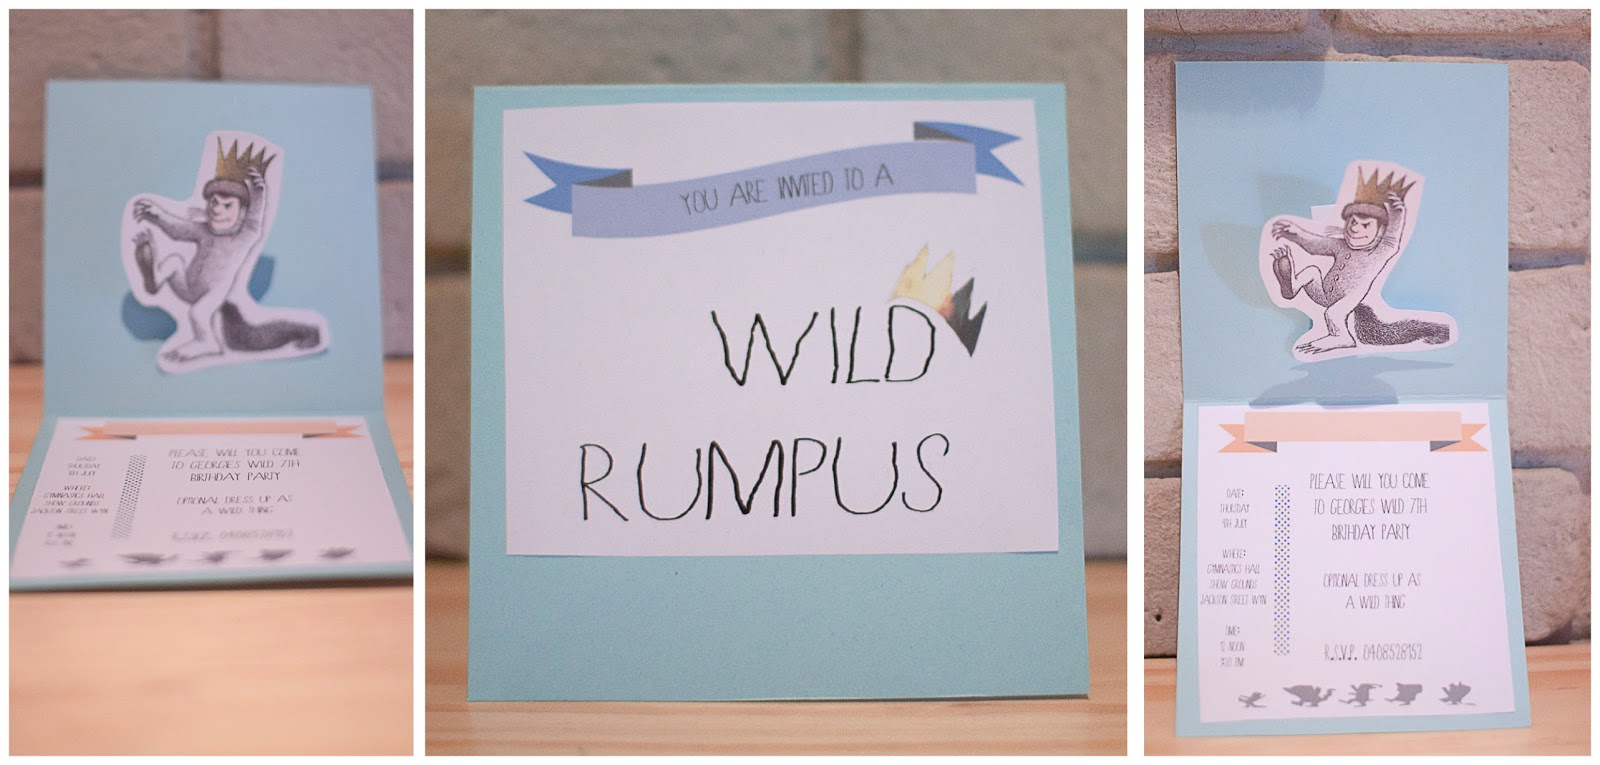 Where The Wild Things Are Free party invitation Download – Free Printable Party Invitations No Download